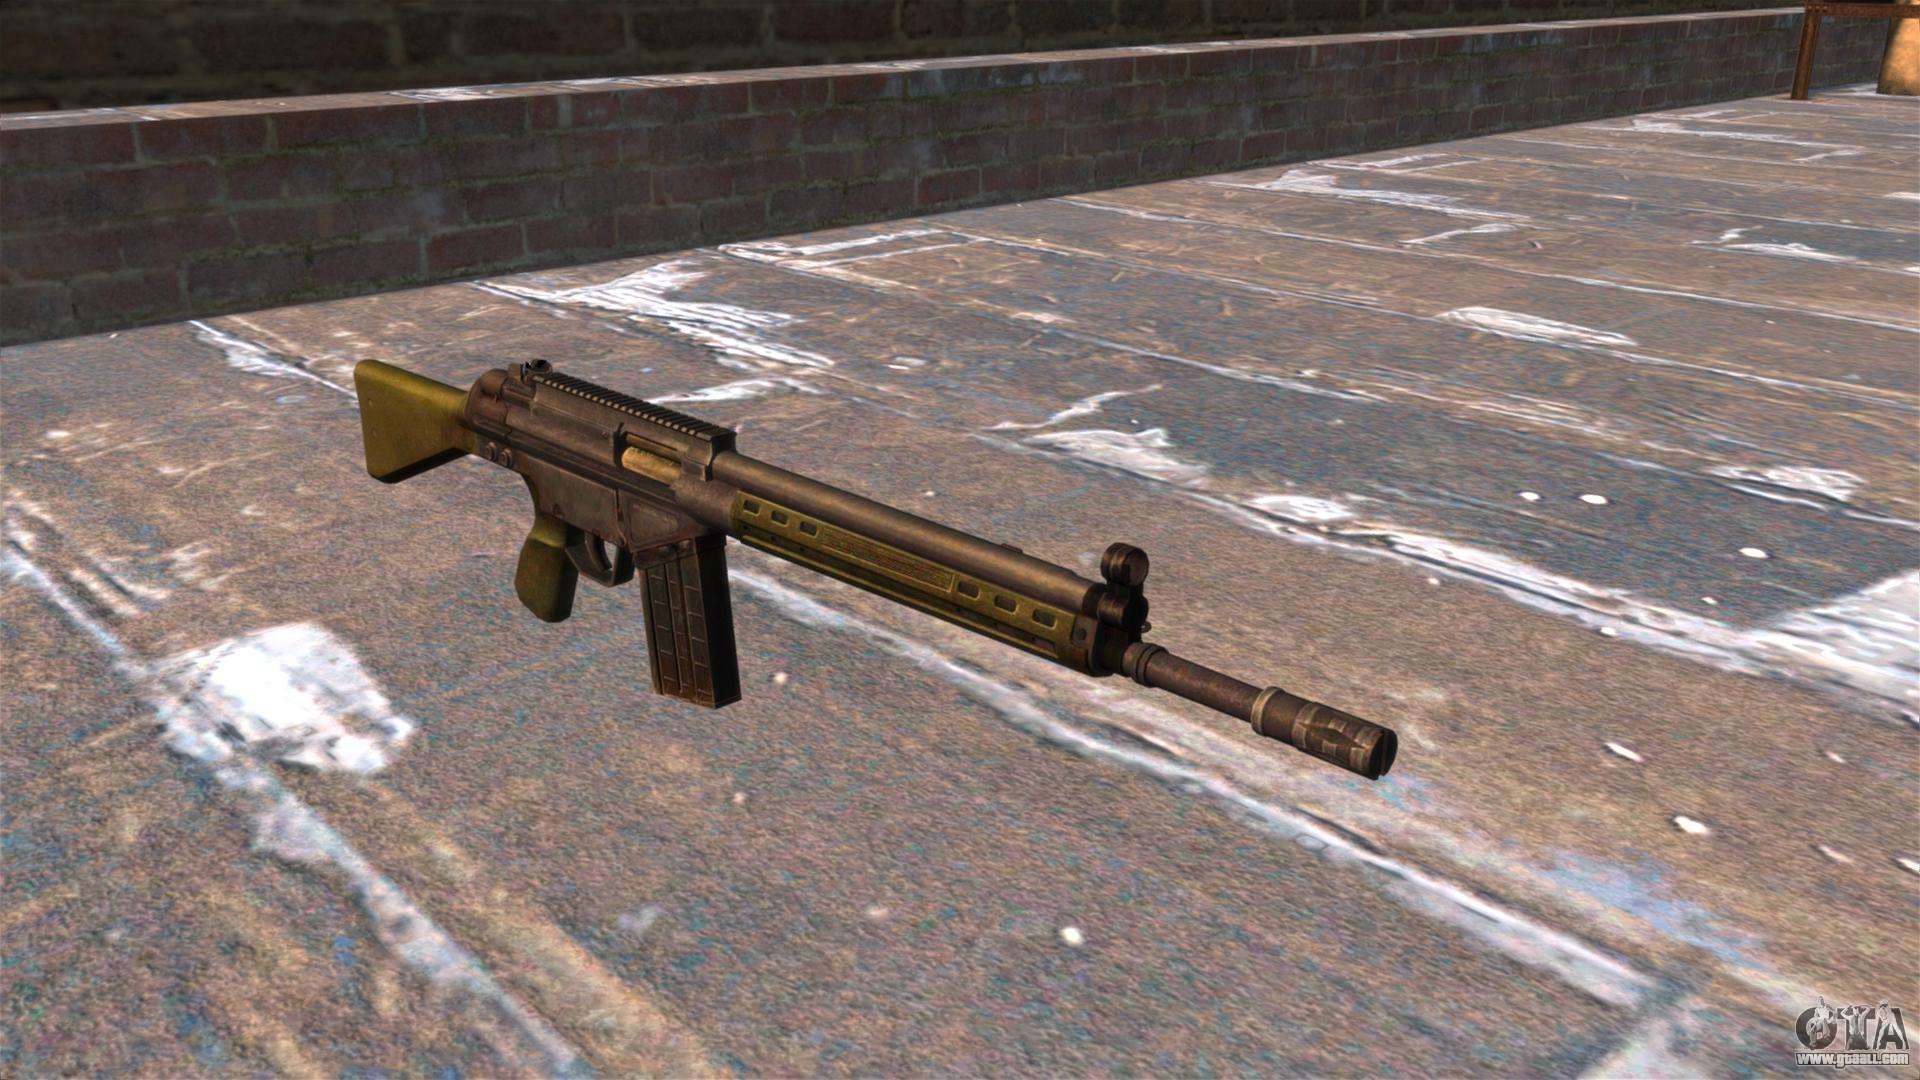 Hk g3 automatic rifle for gta 4 for Portent g3 sw 12